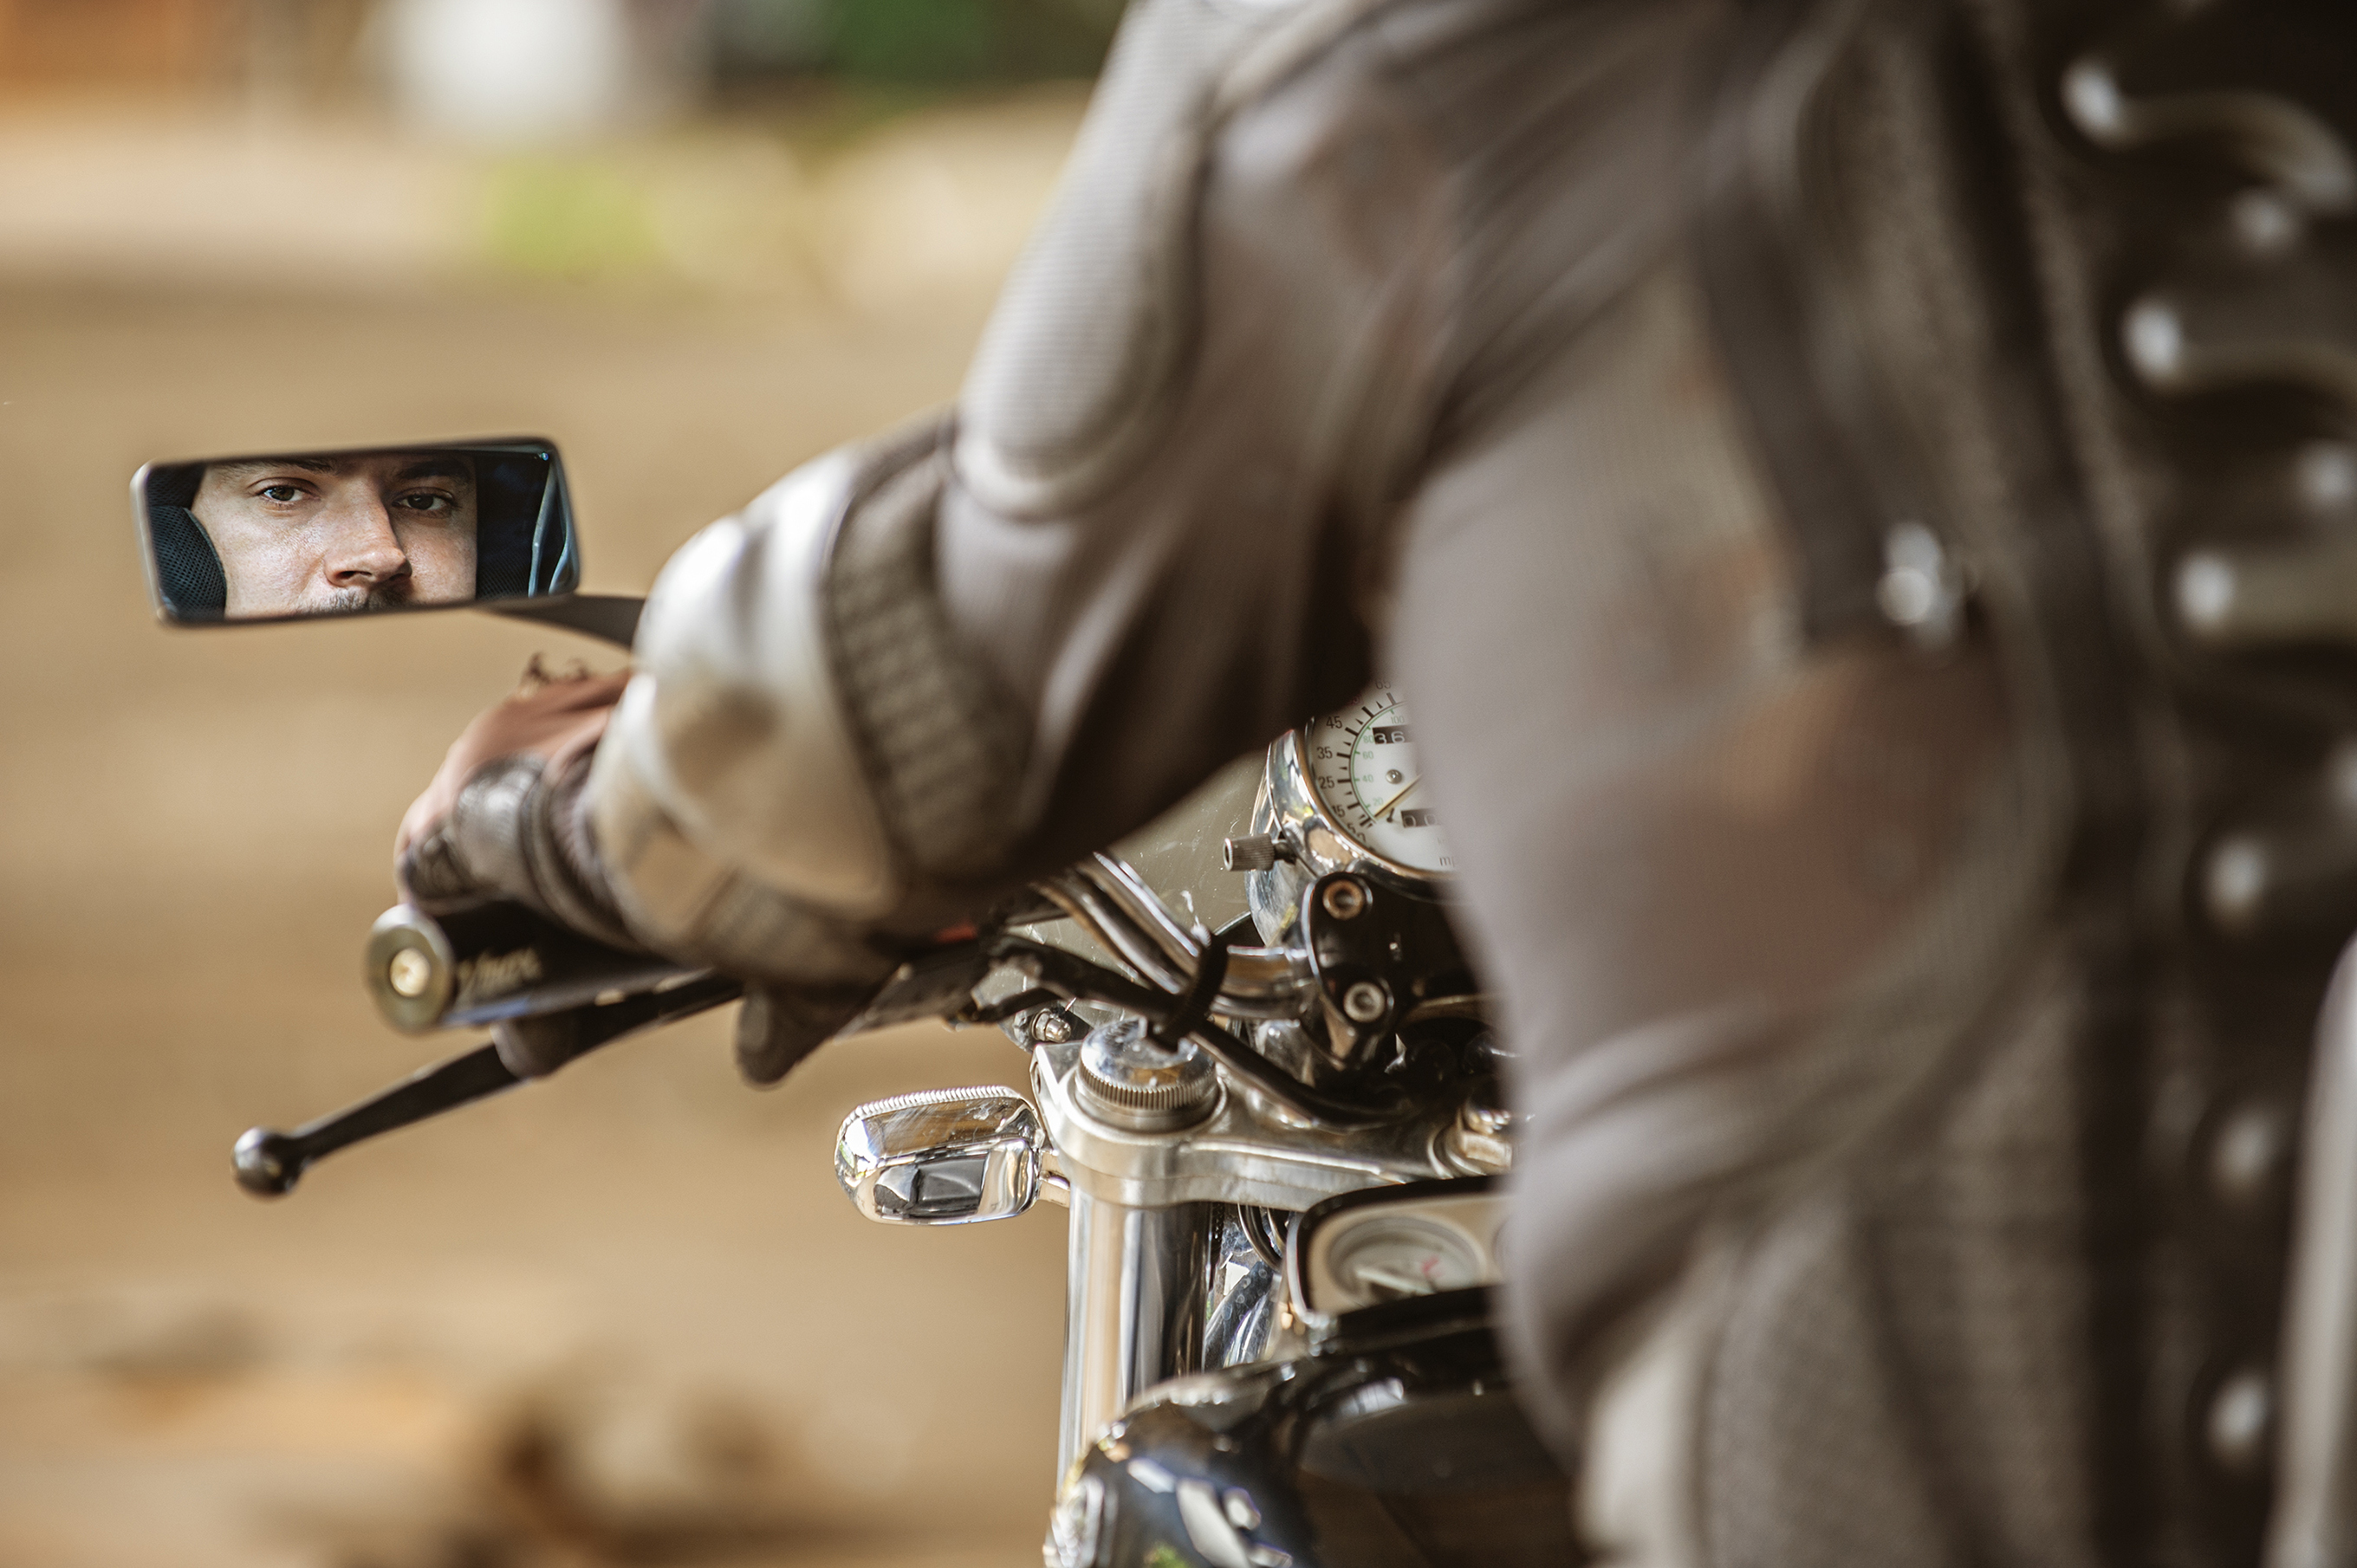 Top Things to Consider Before Purchasing a Motorcycle